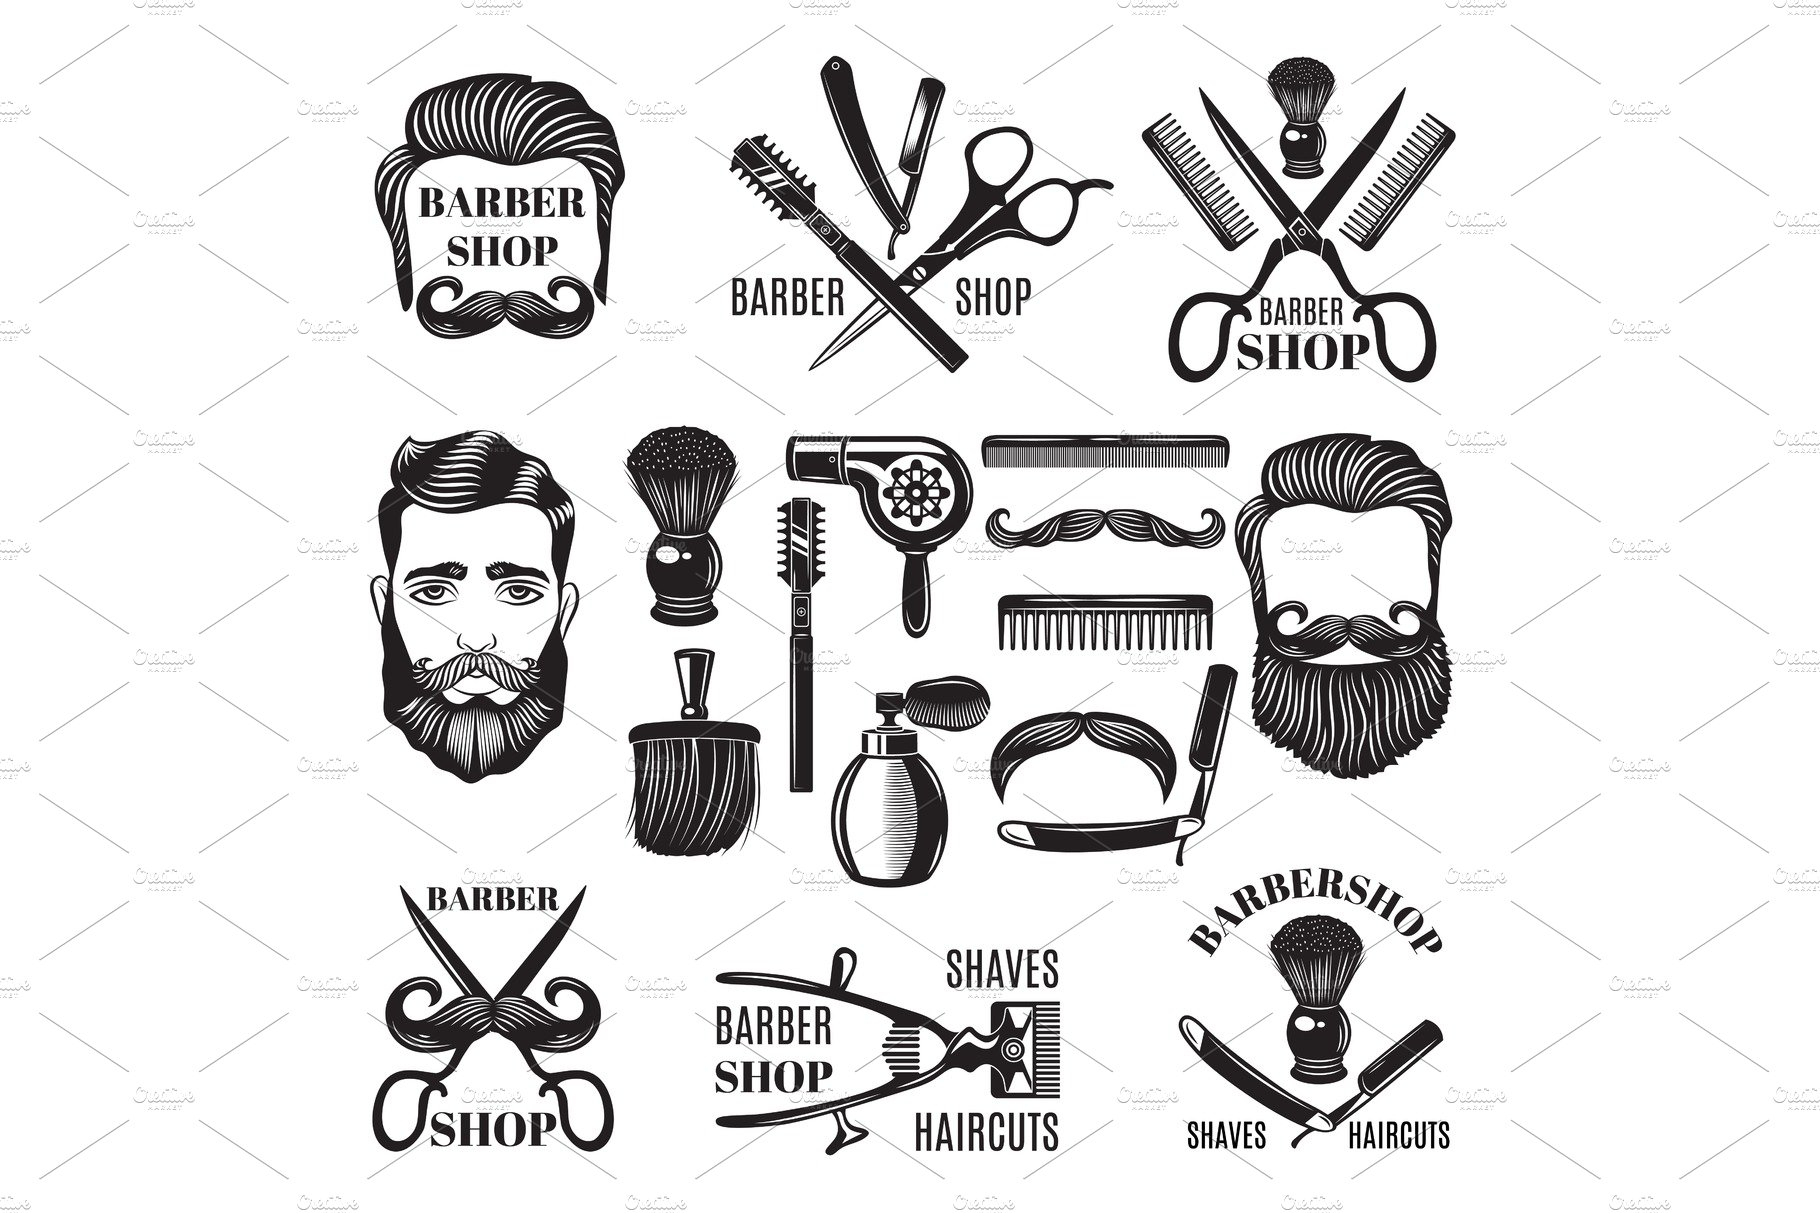 Monochrome Pictures Of Barber Shop Tools Vector Illustrations For